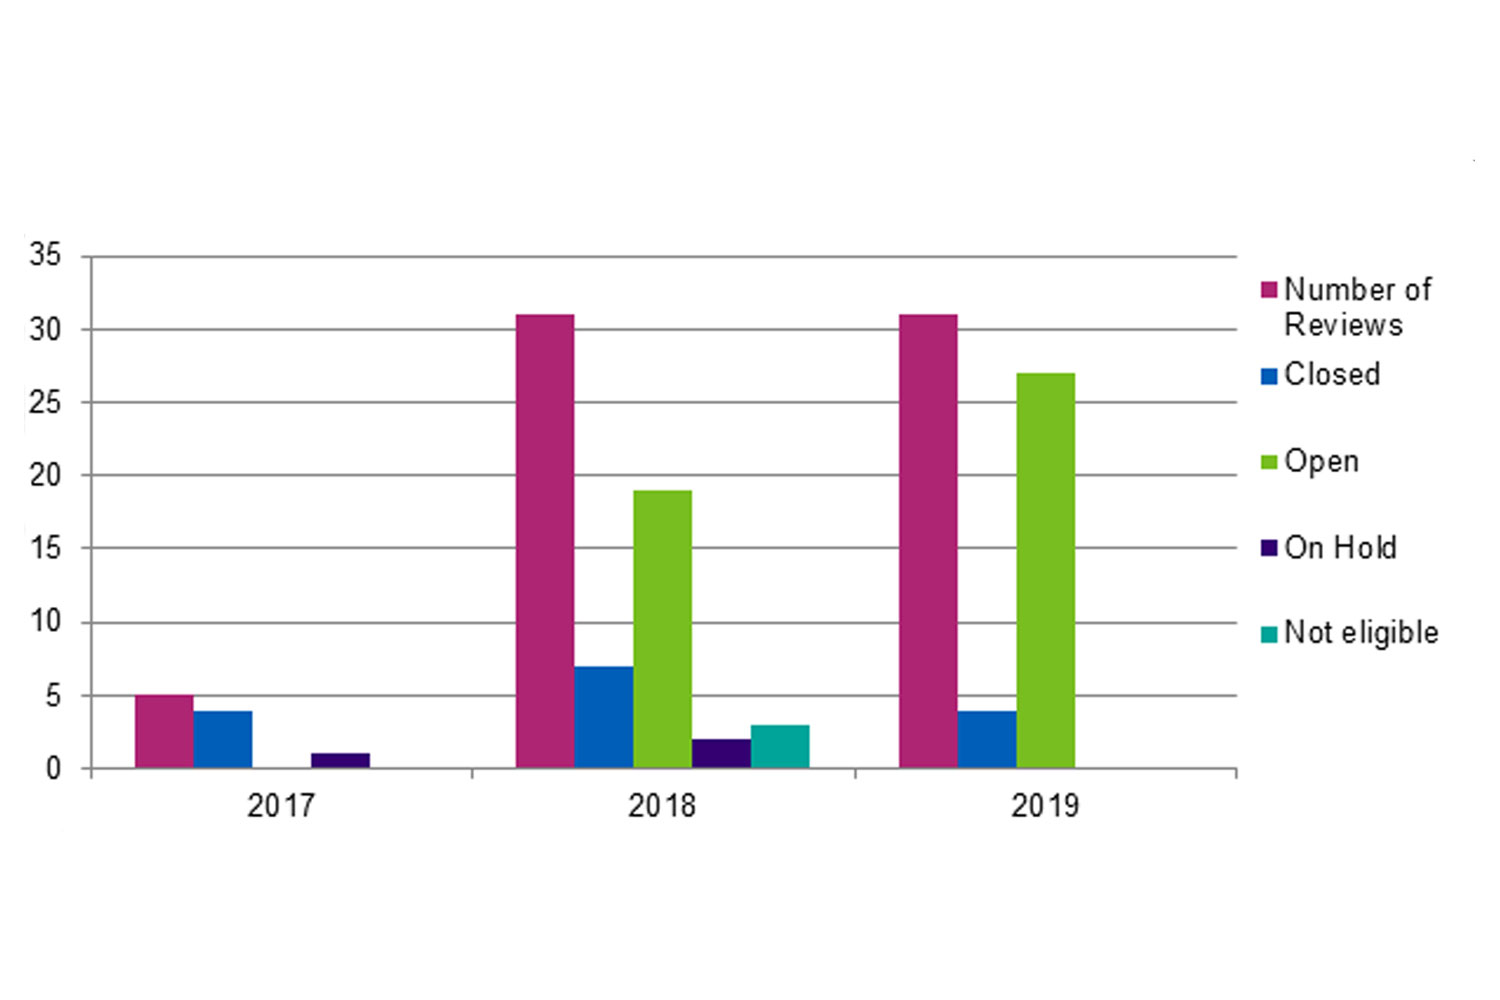 Deaths notified in July 2017 to December 2019 graph